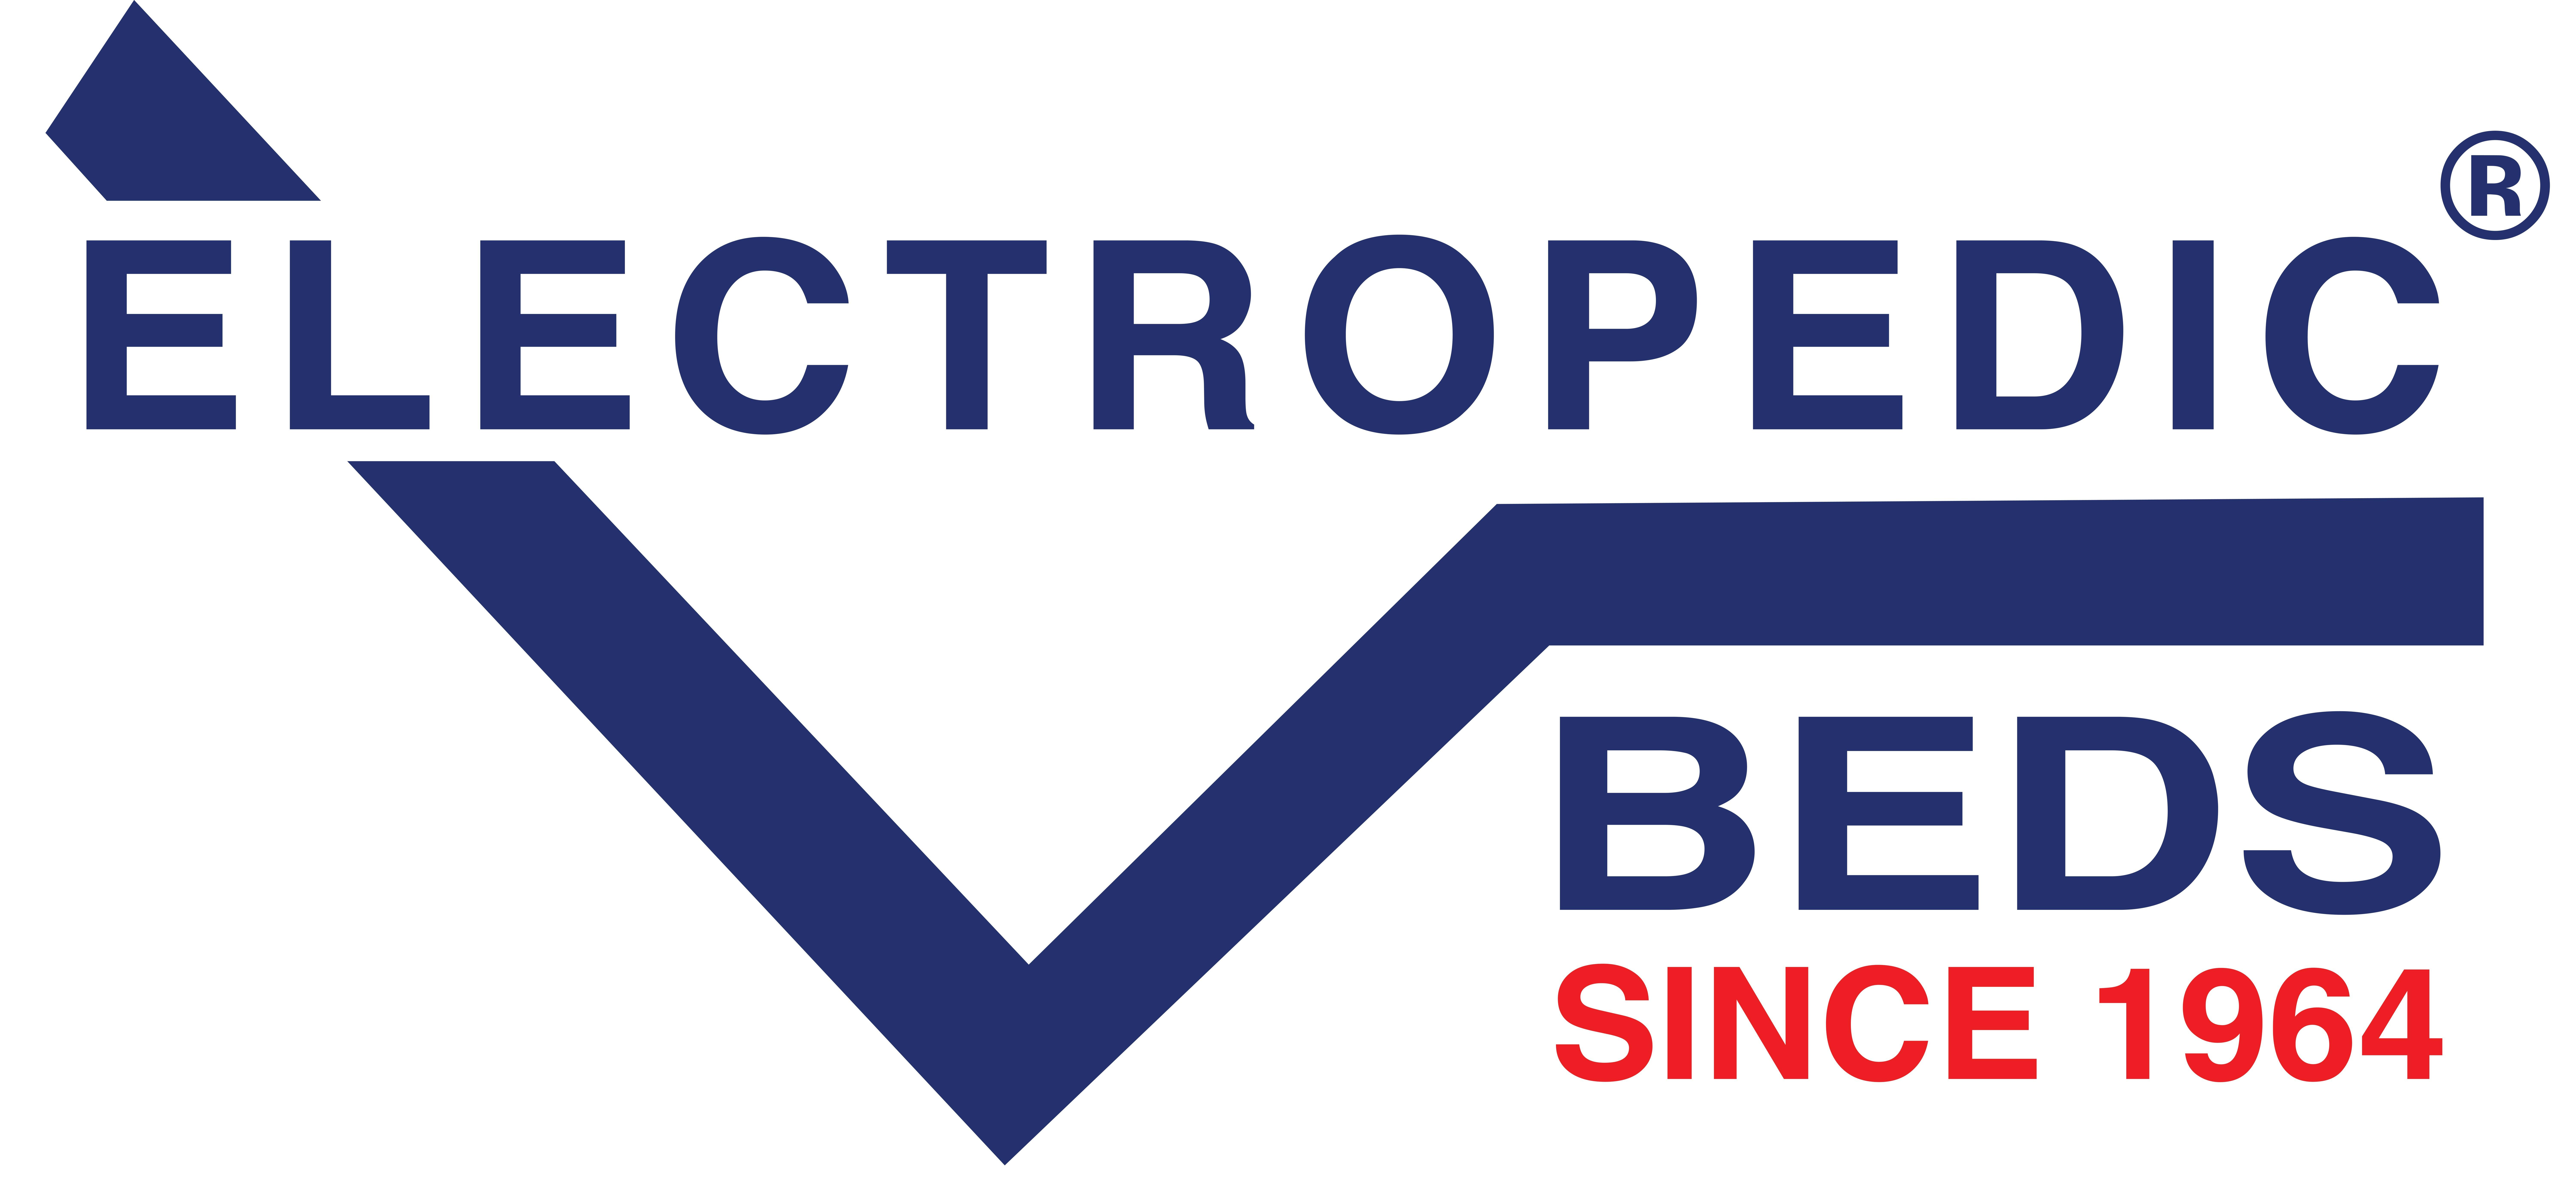 """Electropedic Beds - Since 1964   for over 52 years, we have made """"Your Comfort is Everythging!"""" our only business"""